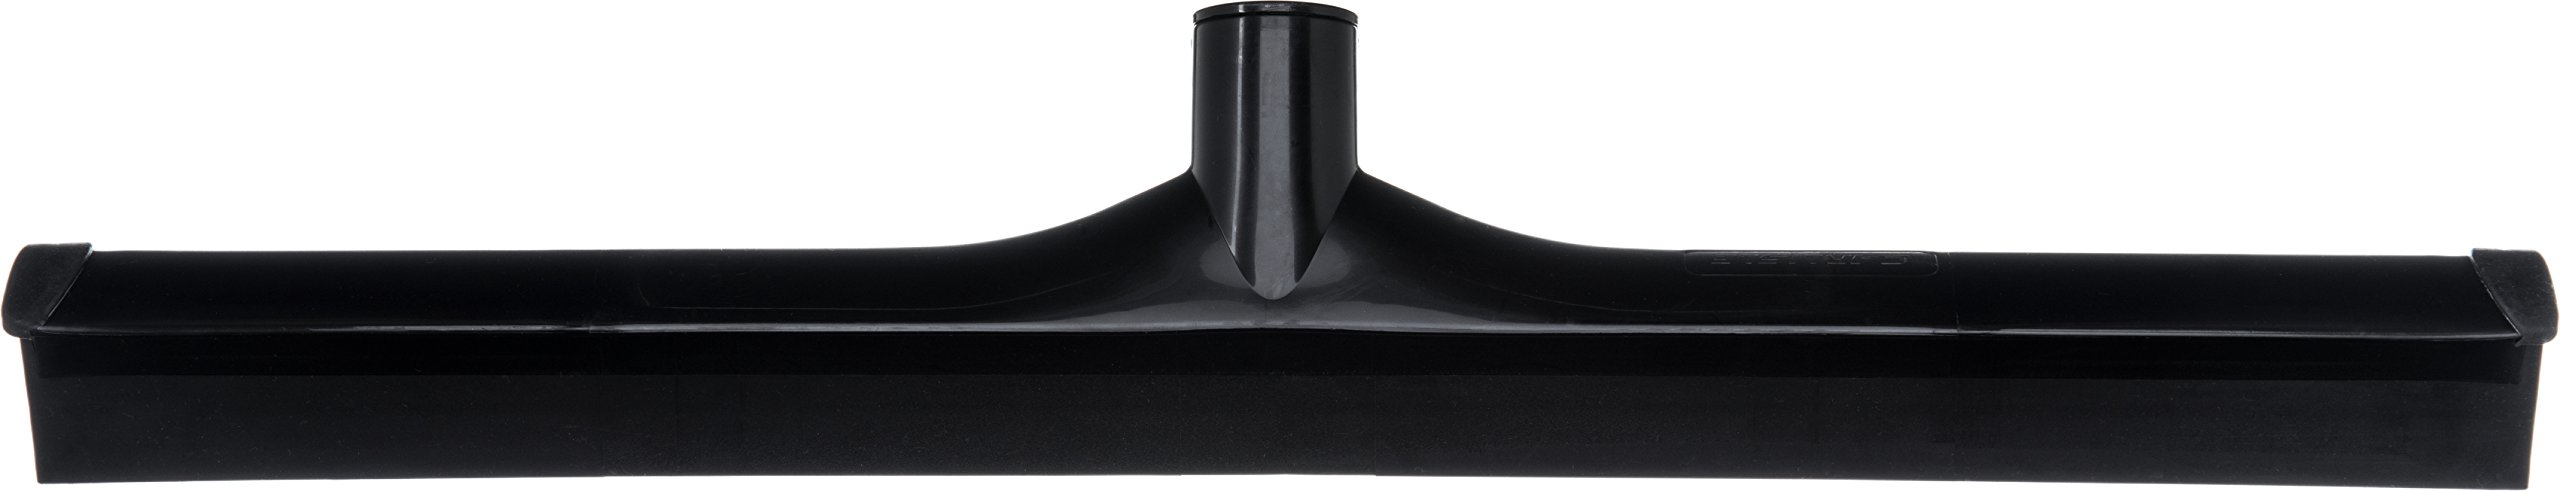 Carlisle 3656703 Solid One-Piece Foam Rubber Head Floor Squeegee, 20'' Length, Black (Case of 6) by Carlisle